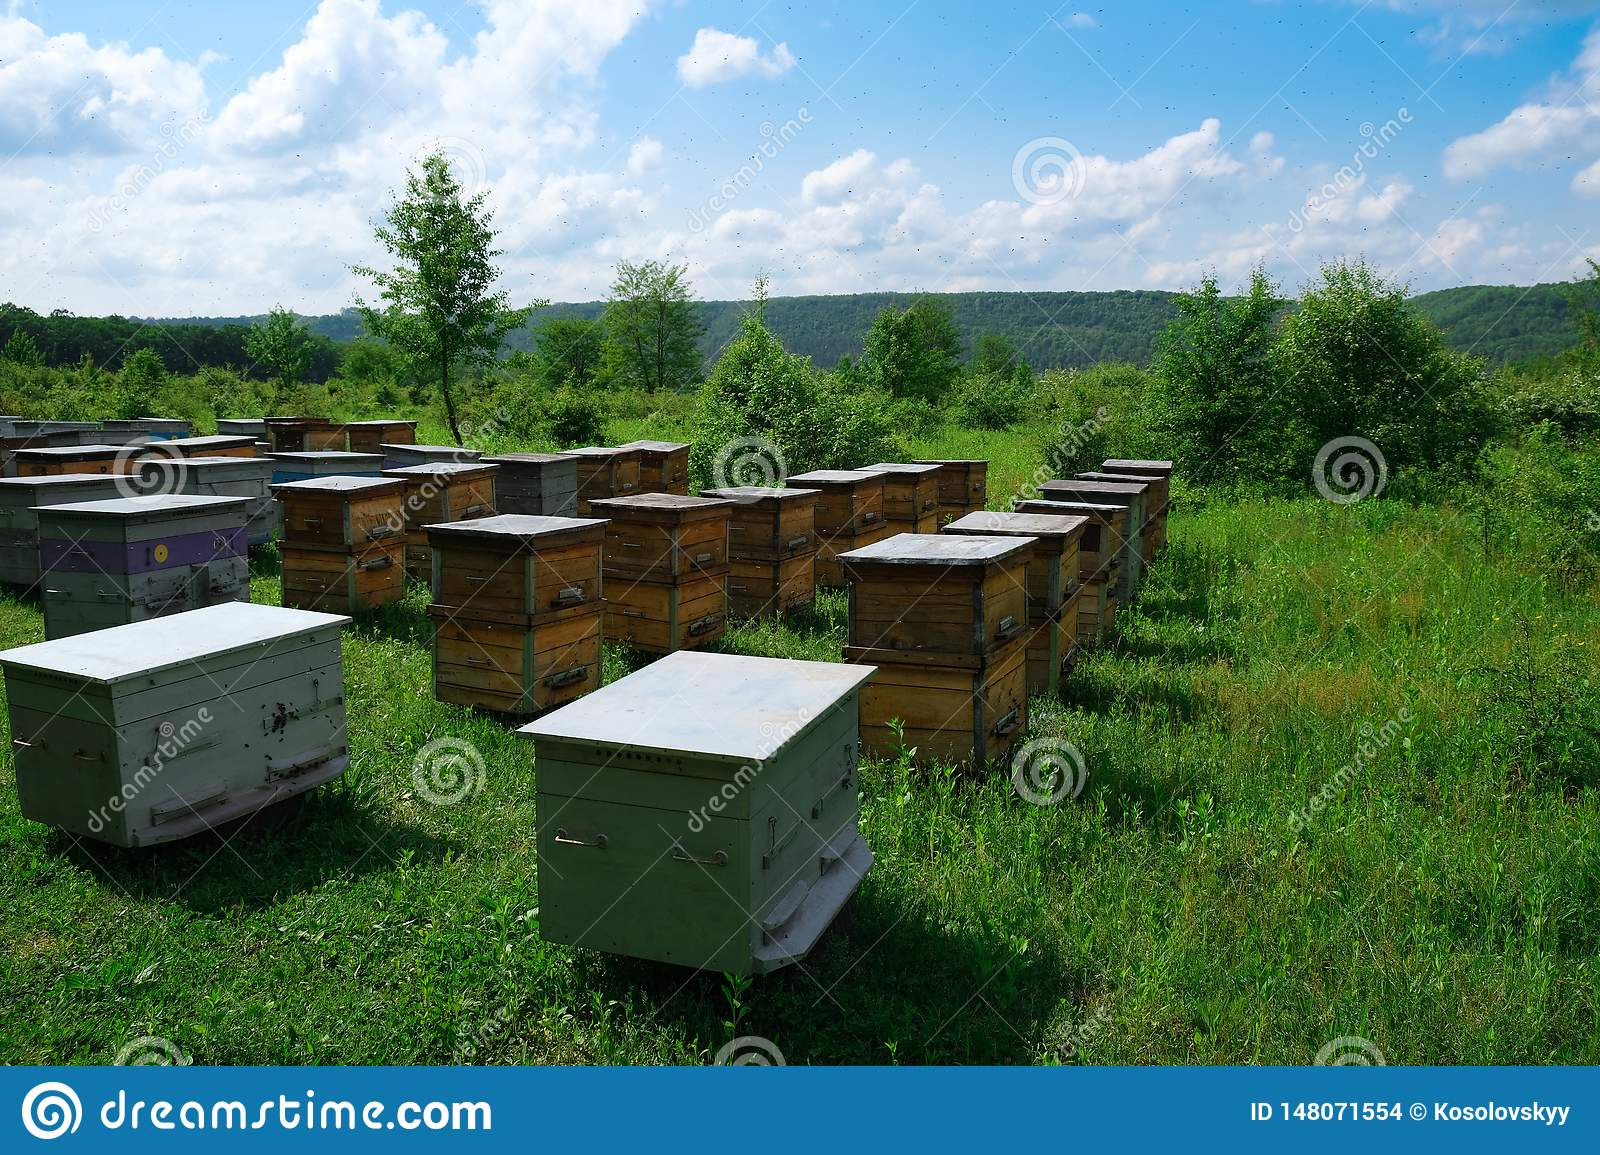 Hives In An Apiary With Bees Stock Photo - Image of grass